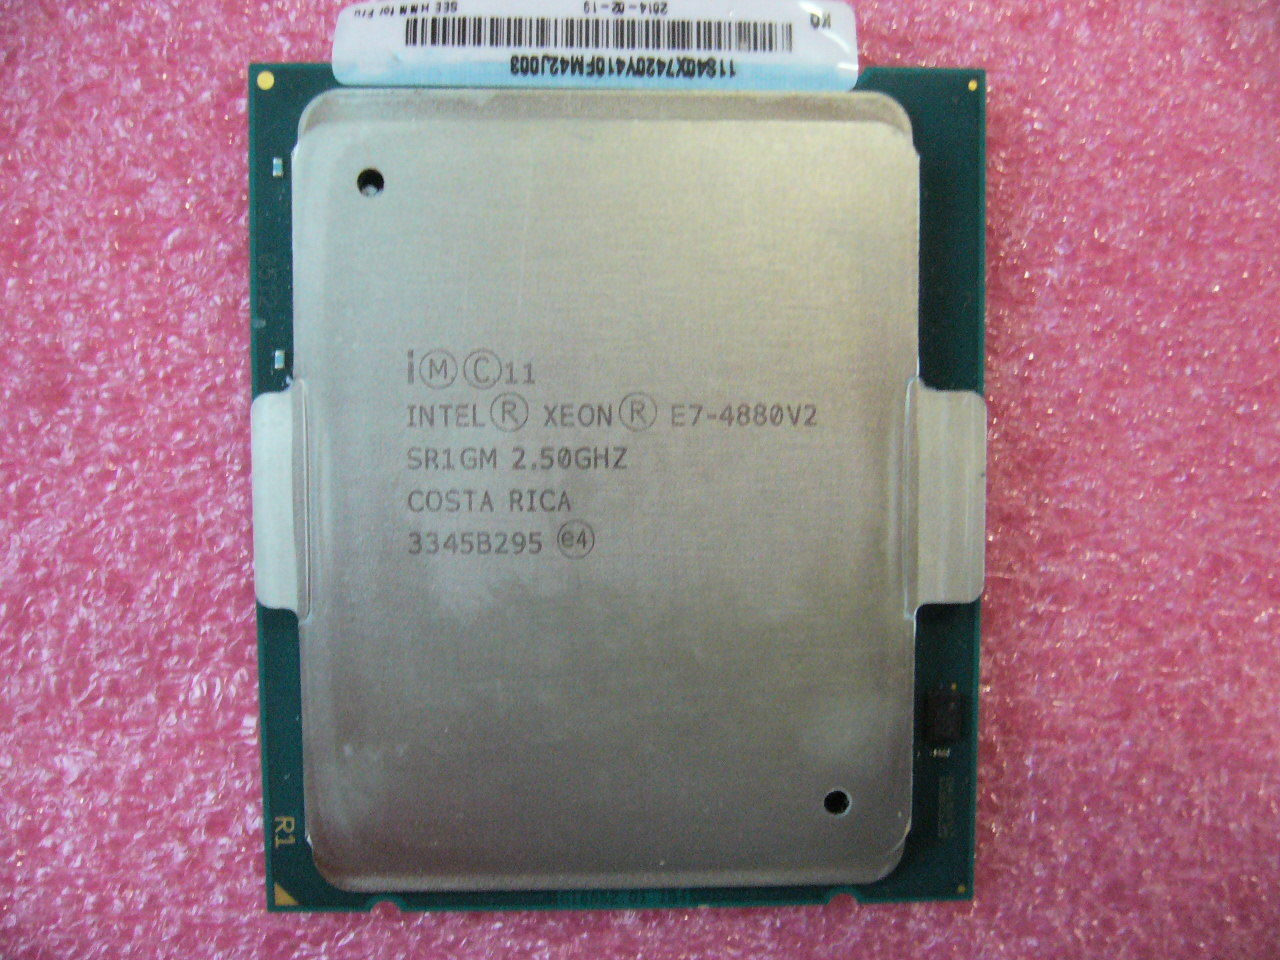 QTY 1x INTEL 15-Cores Xeon CPU E7-4880 V2 2.5GHZ/37.5MB LGA2011-1 SR1GM